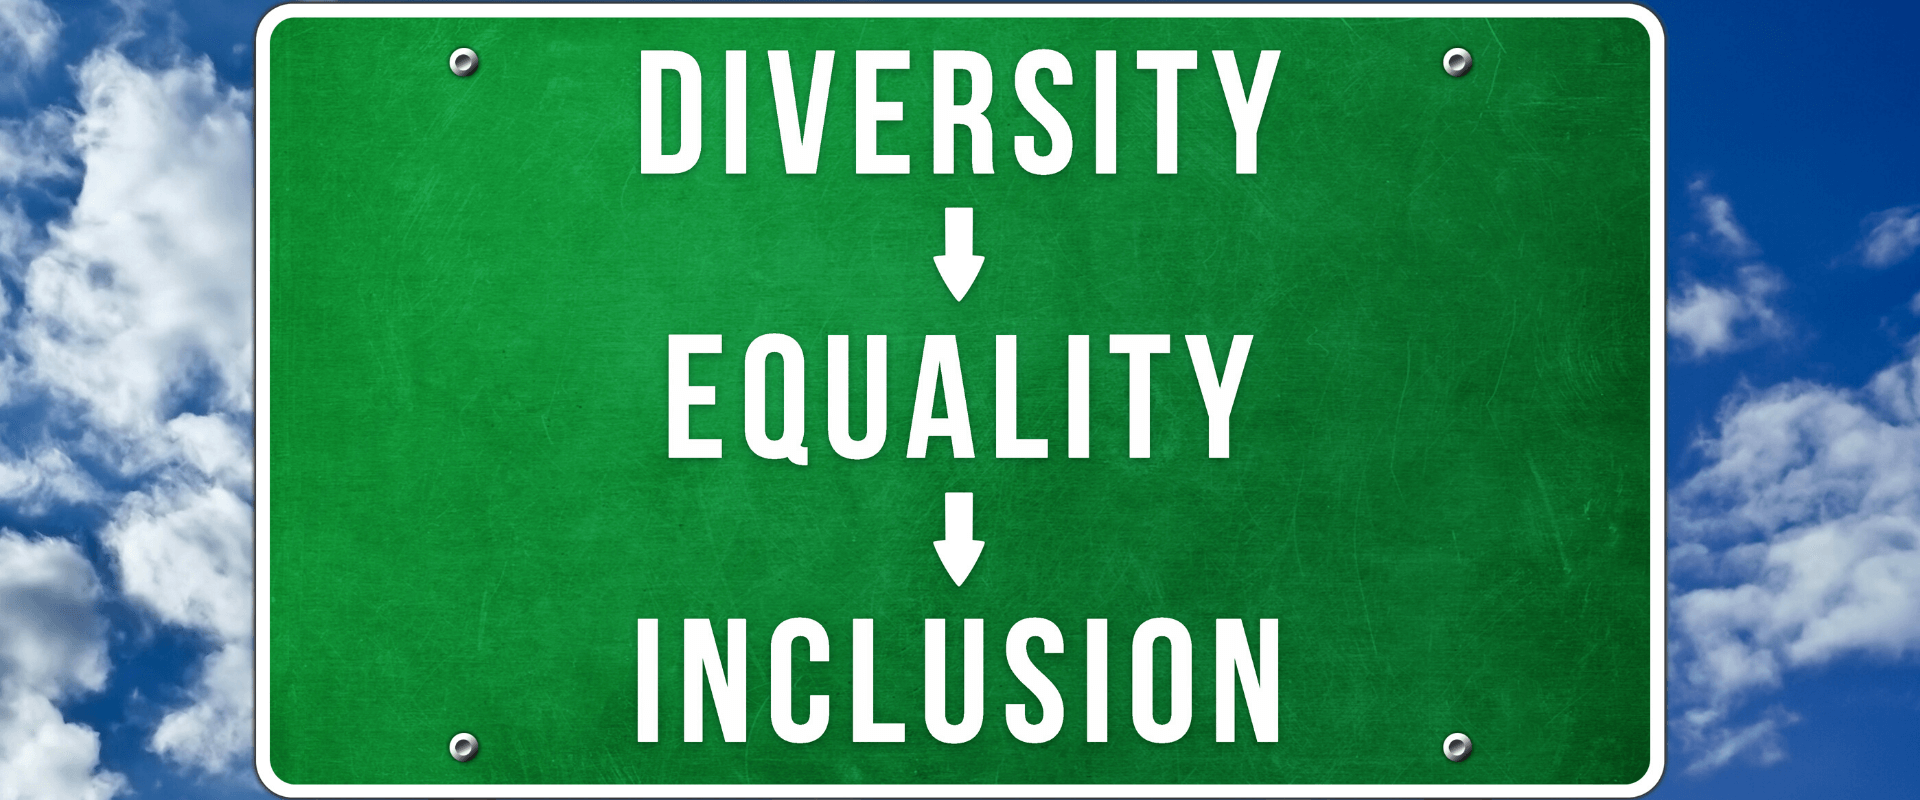 Diversity, Equality, Inclusion sign with sky background